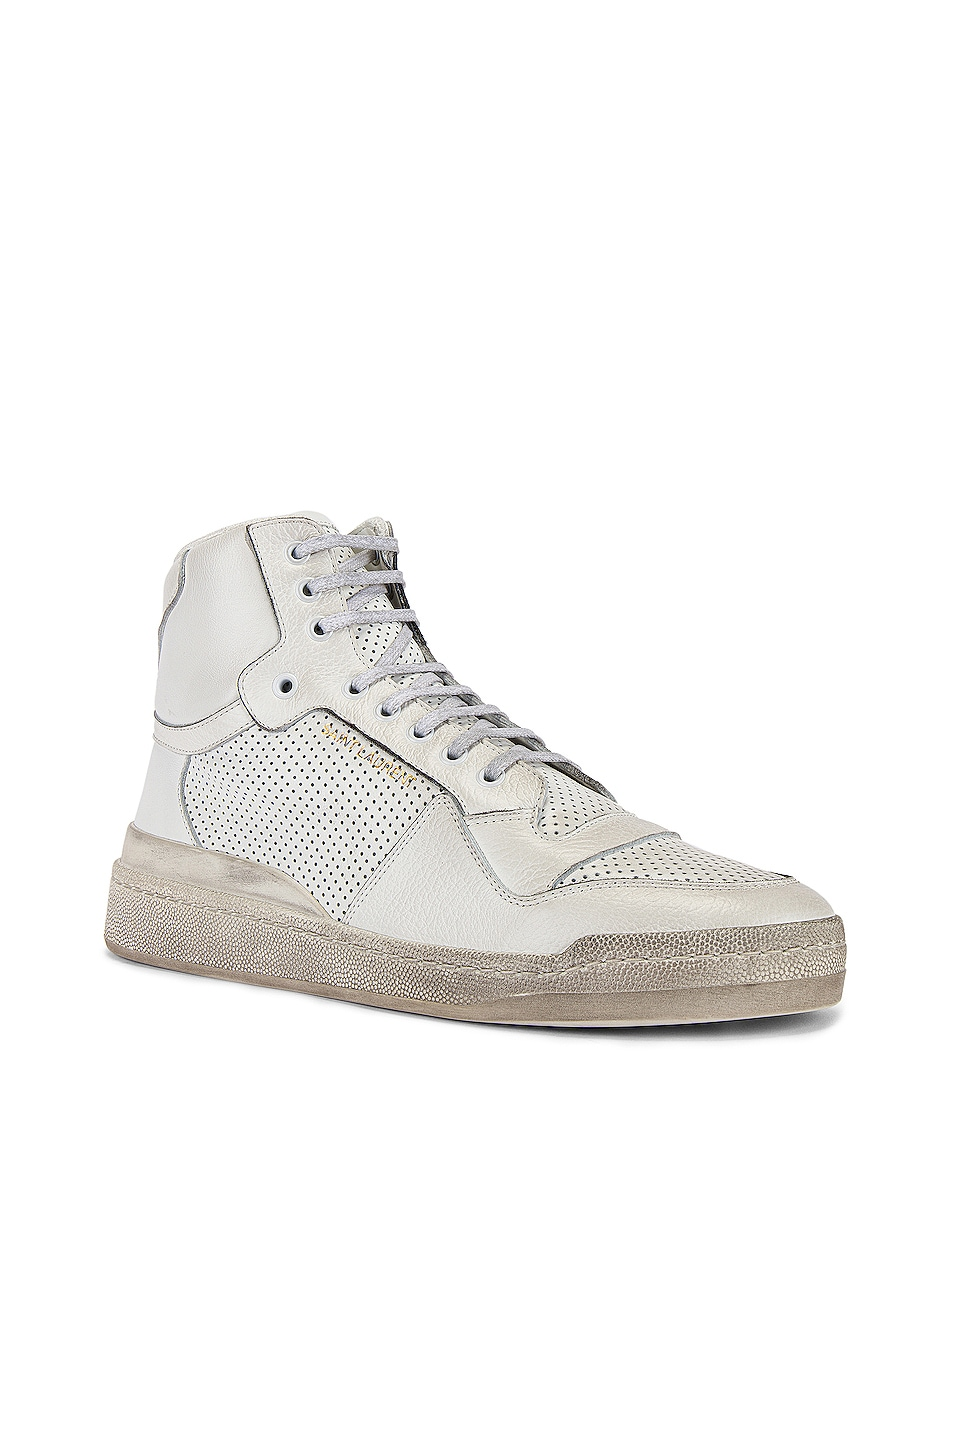 Image 2 of Saint Laurent SL24 Hi Top Sneaker in White